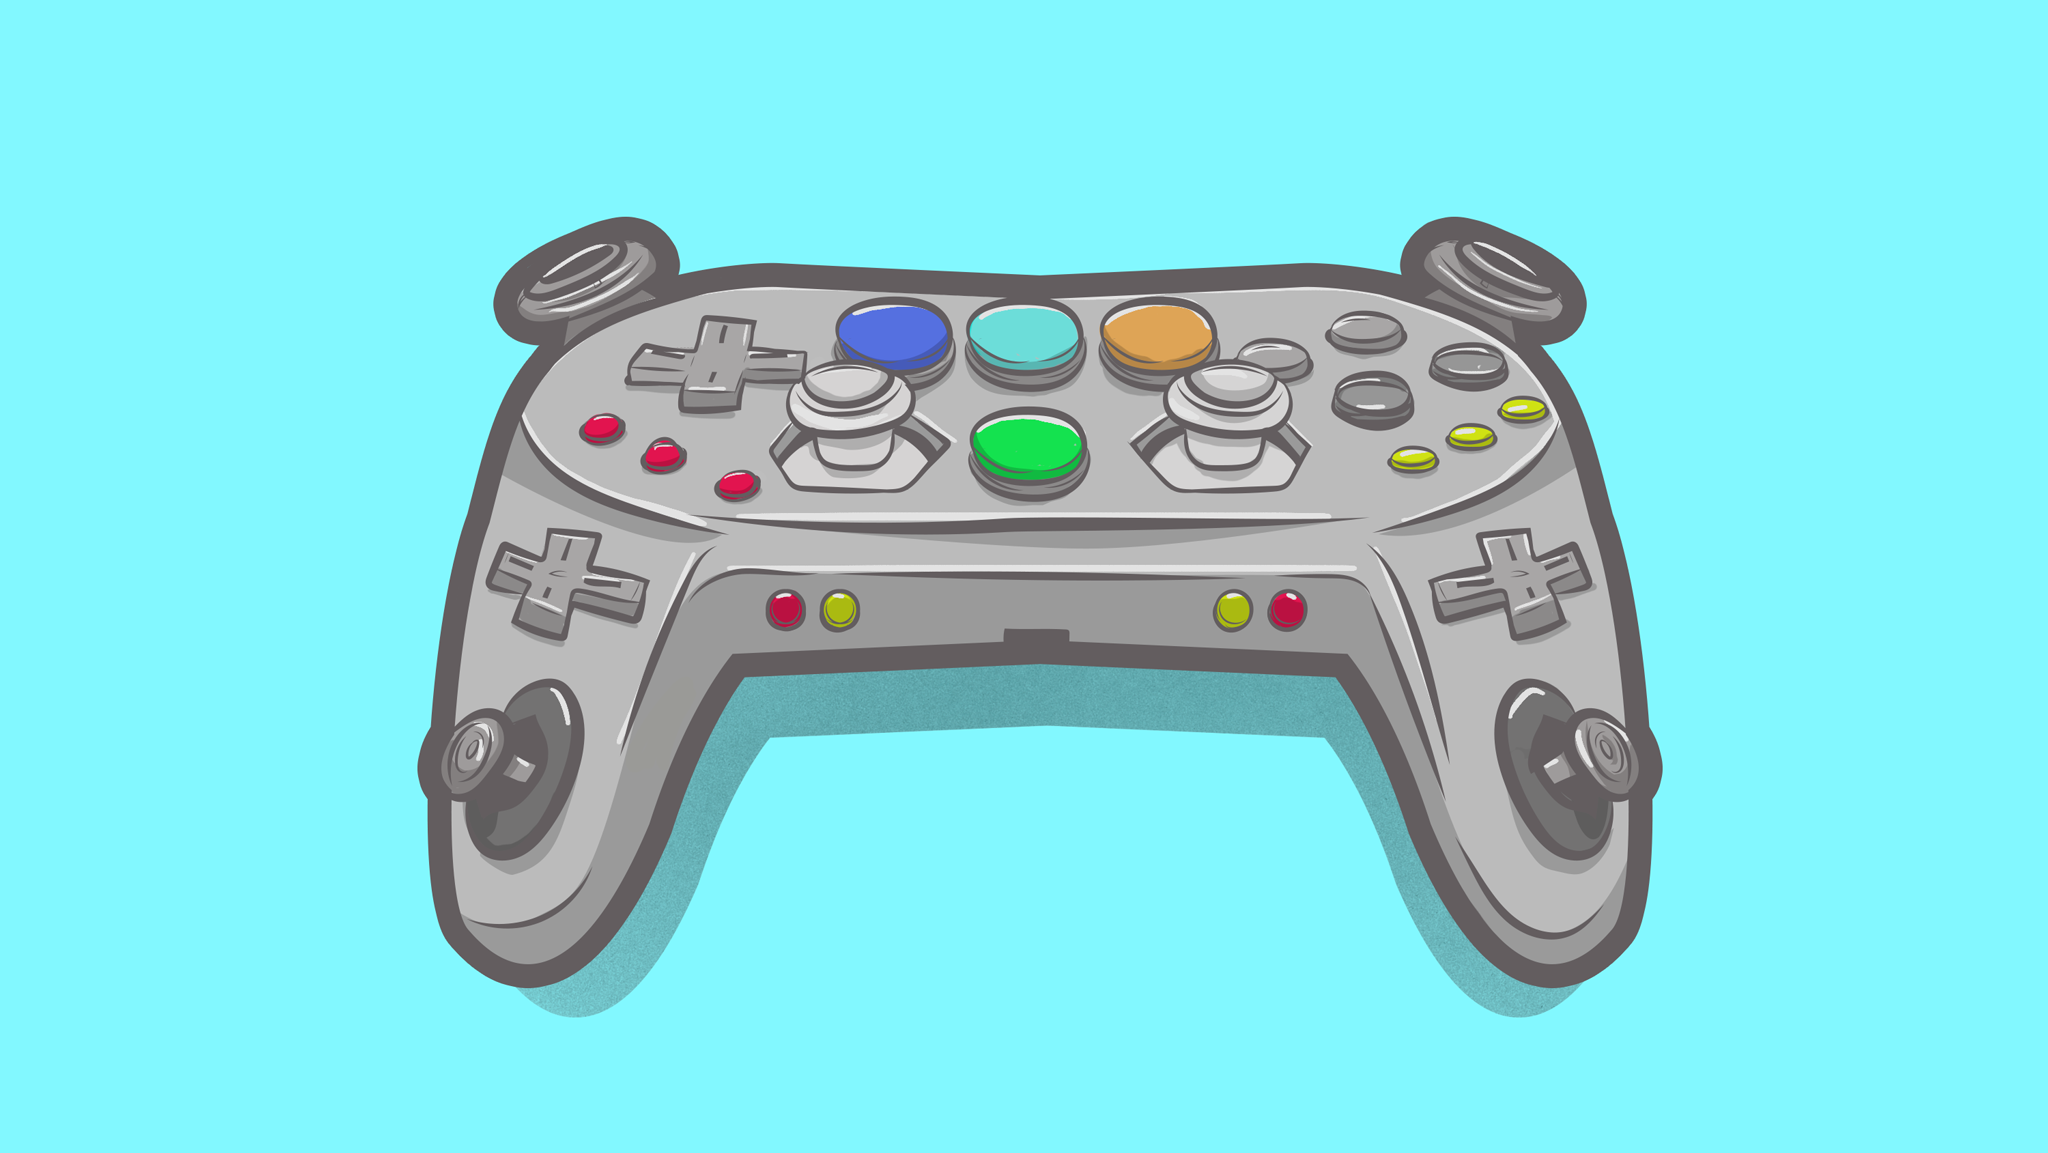 The Quest to Make a Better Video Game Controller - TechSpot